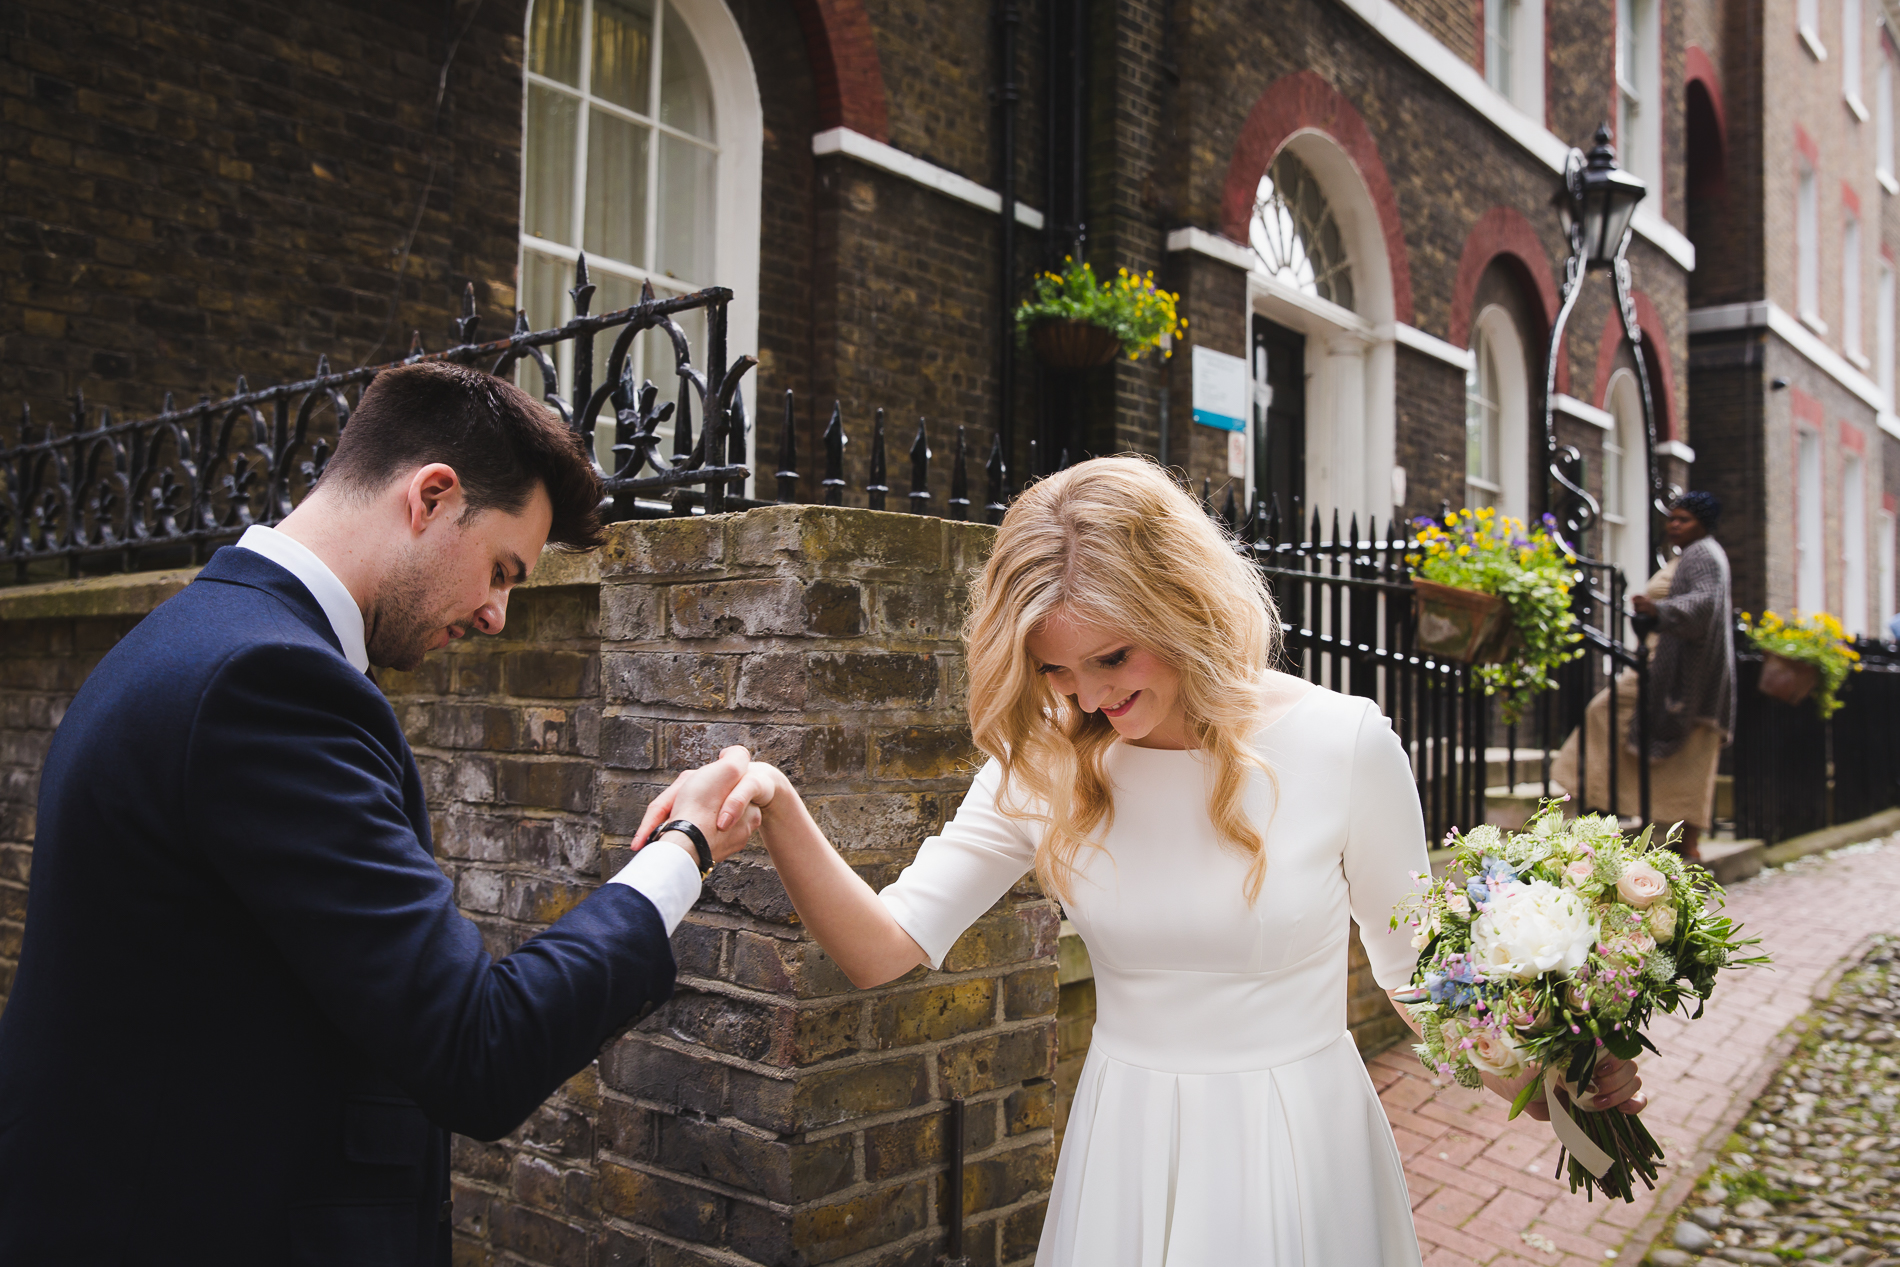 London Wedding Elopement Couple Image | a smiling bride crosses the cobblestoned streets